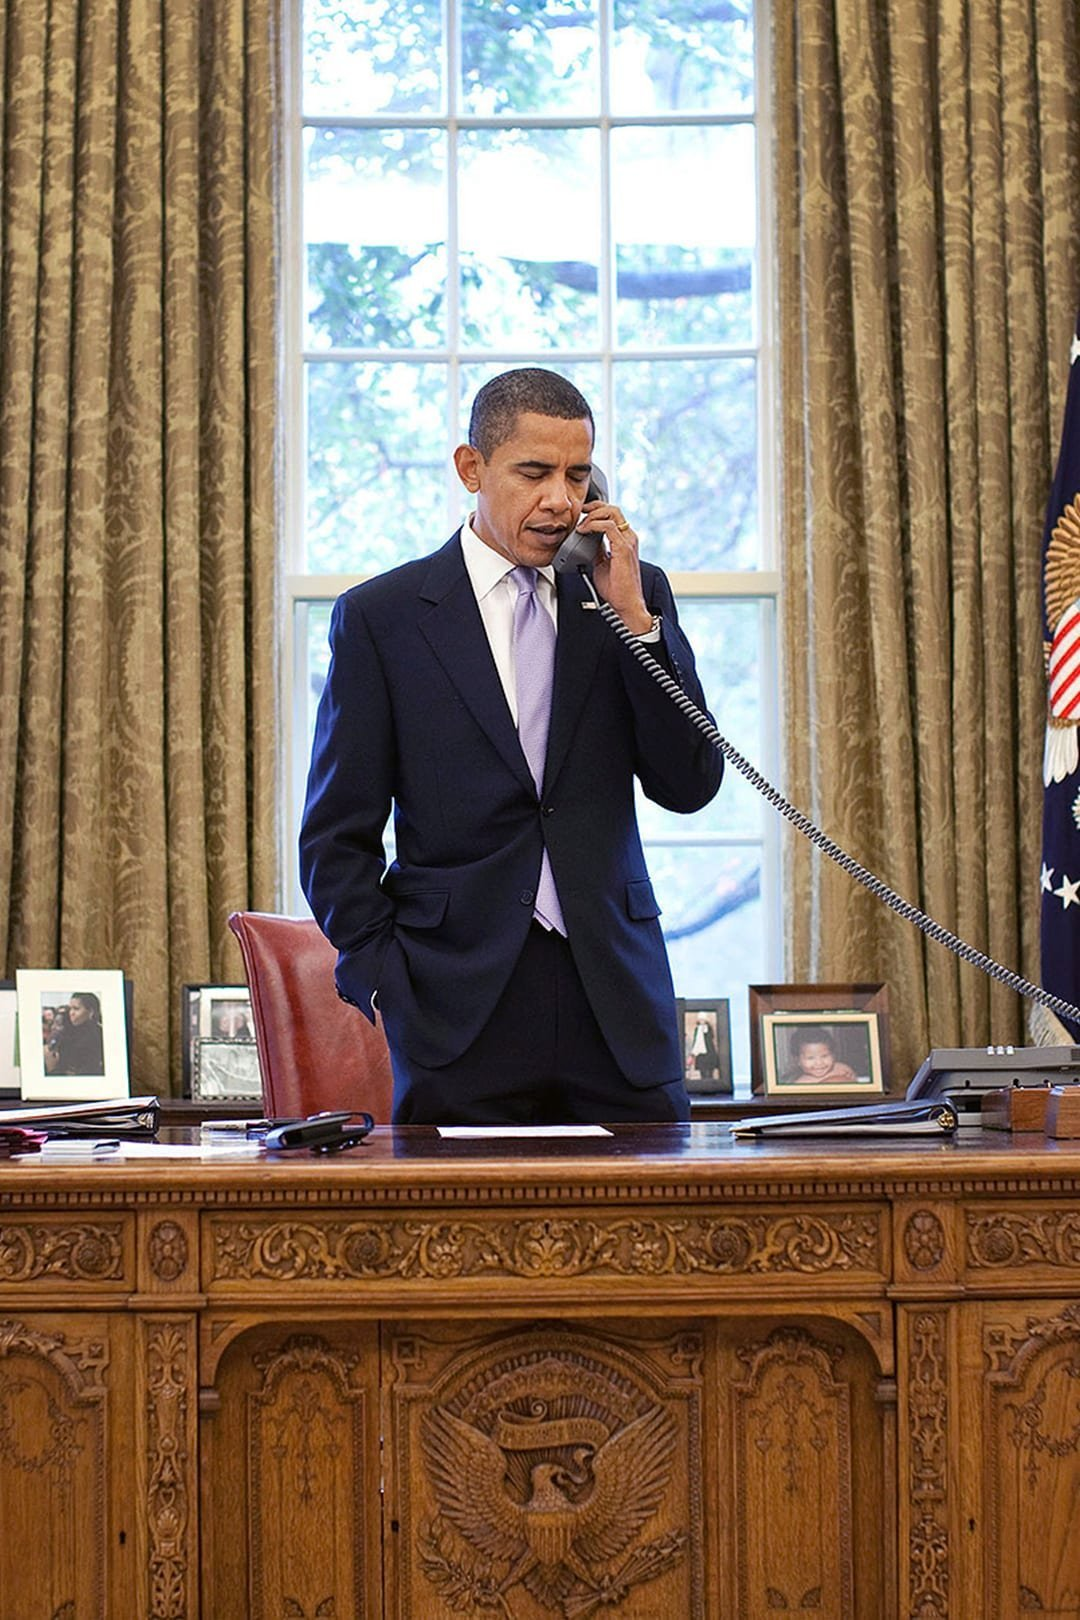 The Story Behind The Iconic Oval Office Desk